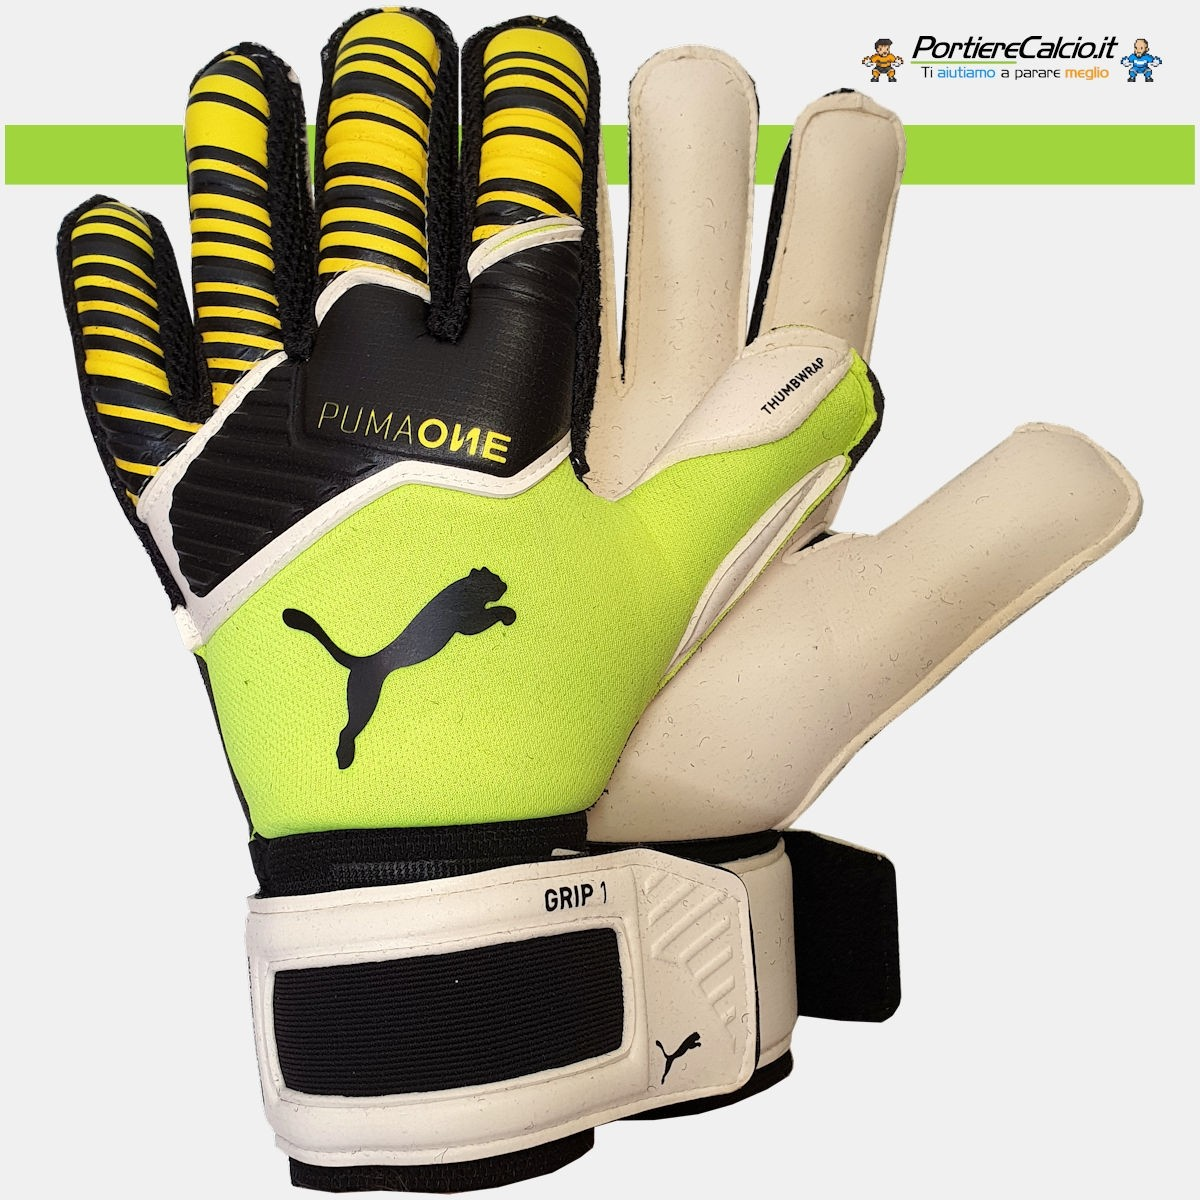 Reina usa i guanti Puma One Grip 1